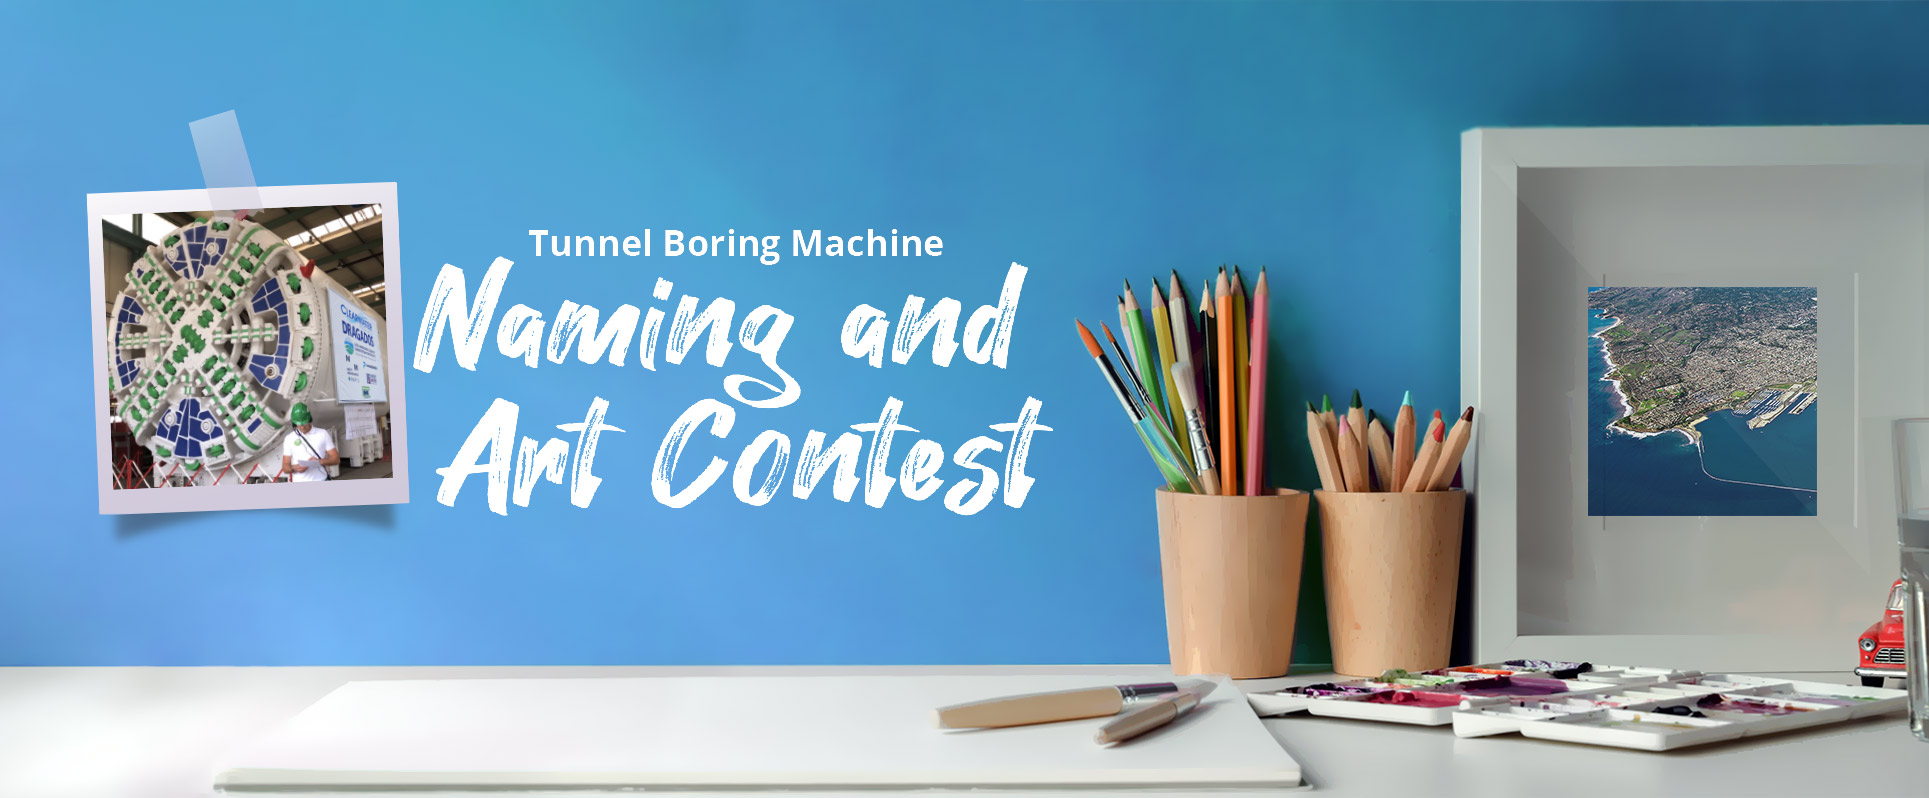 Over 100 Students Entered the TBM Contests